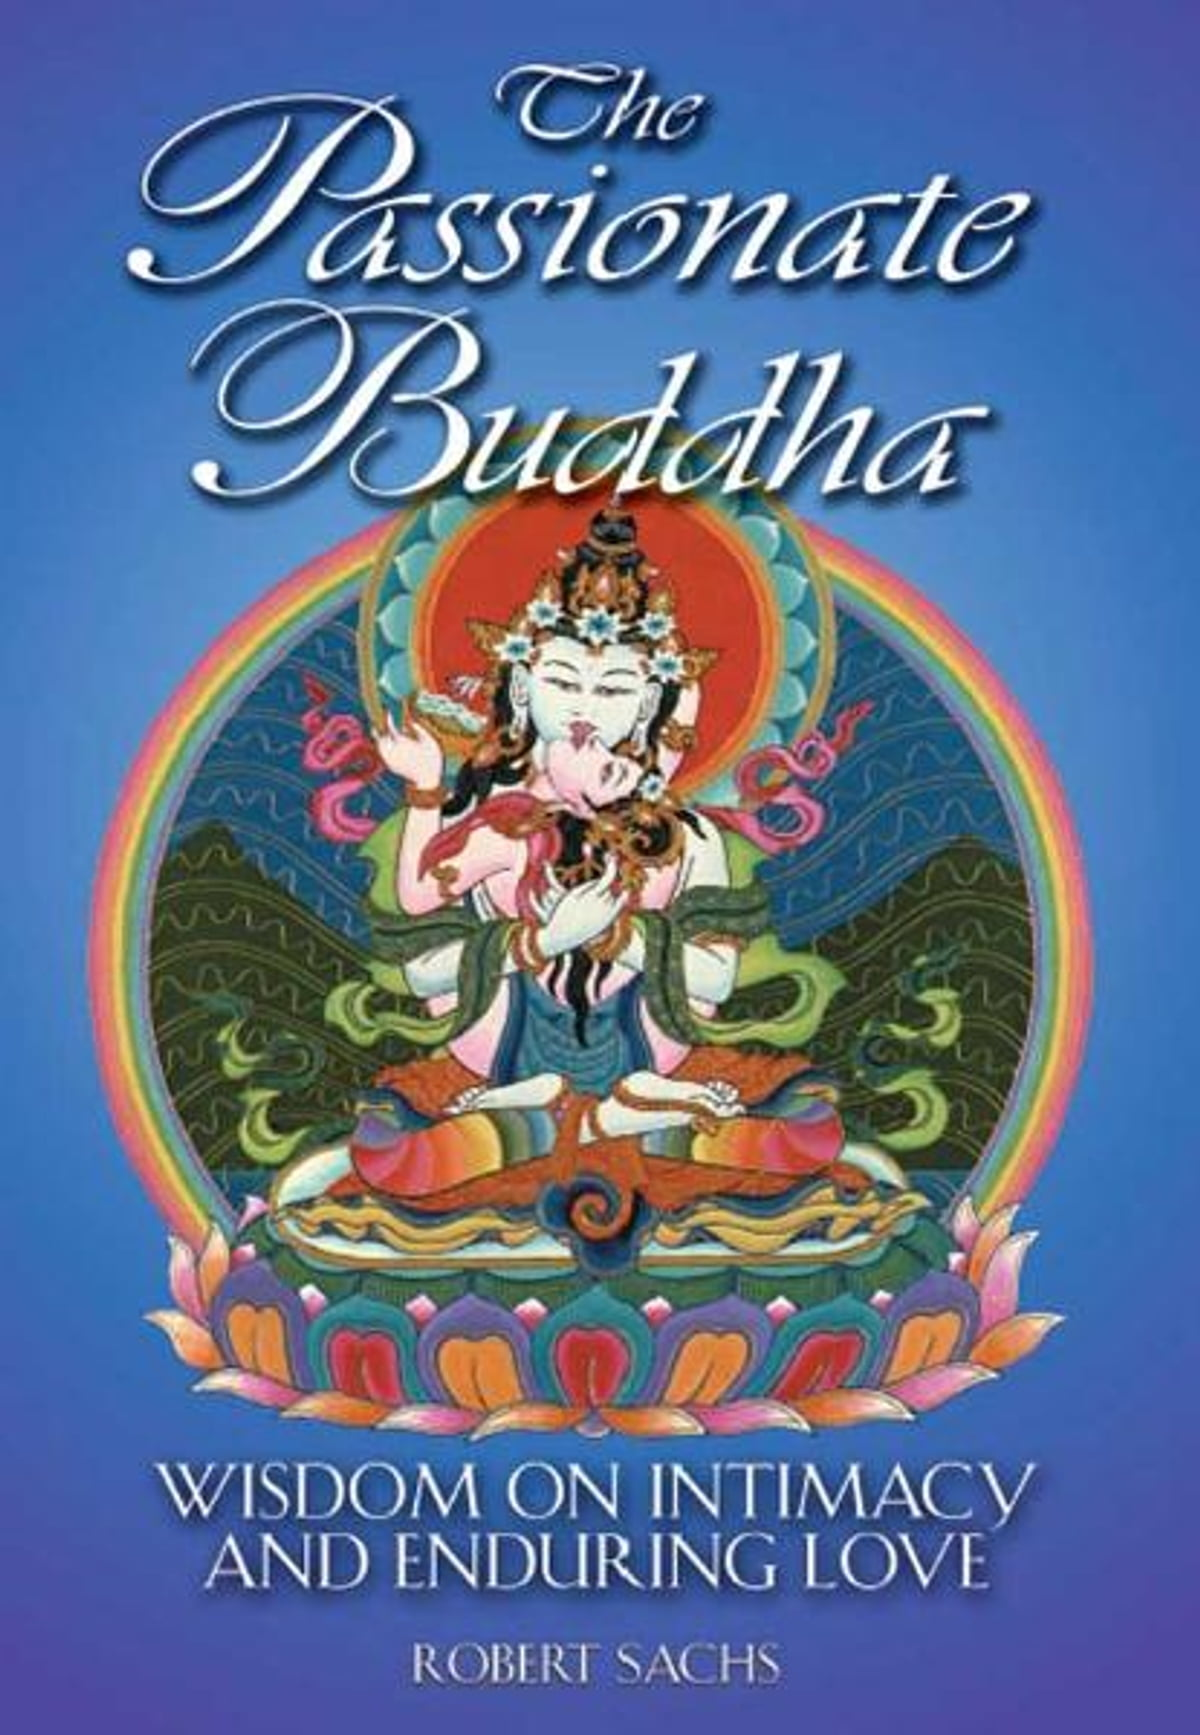 The Passionate Buddha: Wisdom On Intimacy And Enduring Love Ebook By Robert  Sachs  9781594776748  Kobo